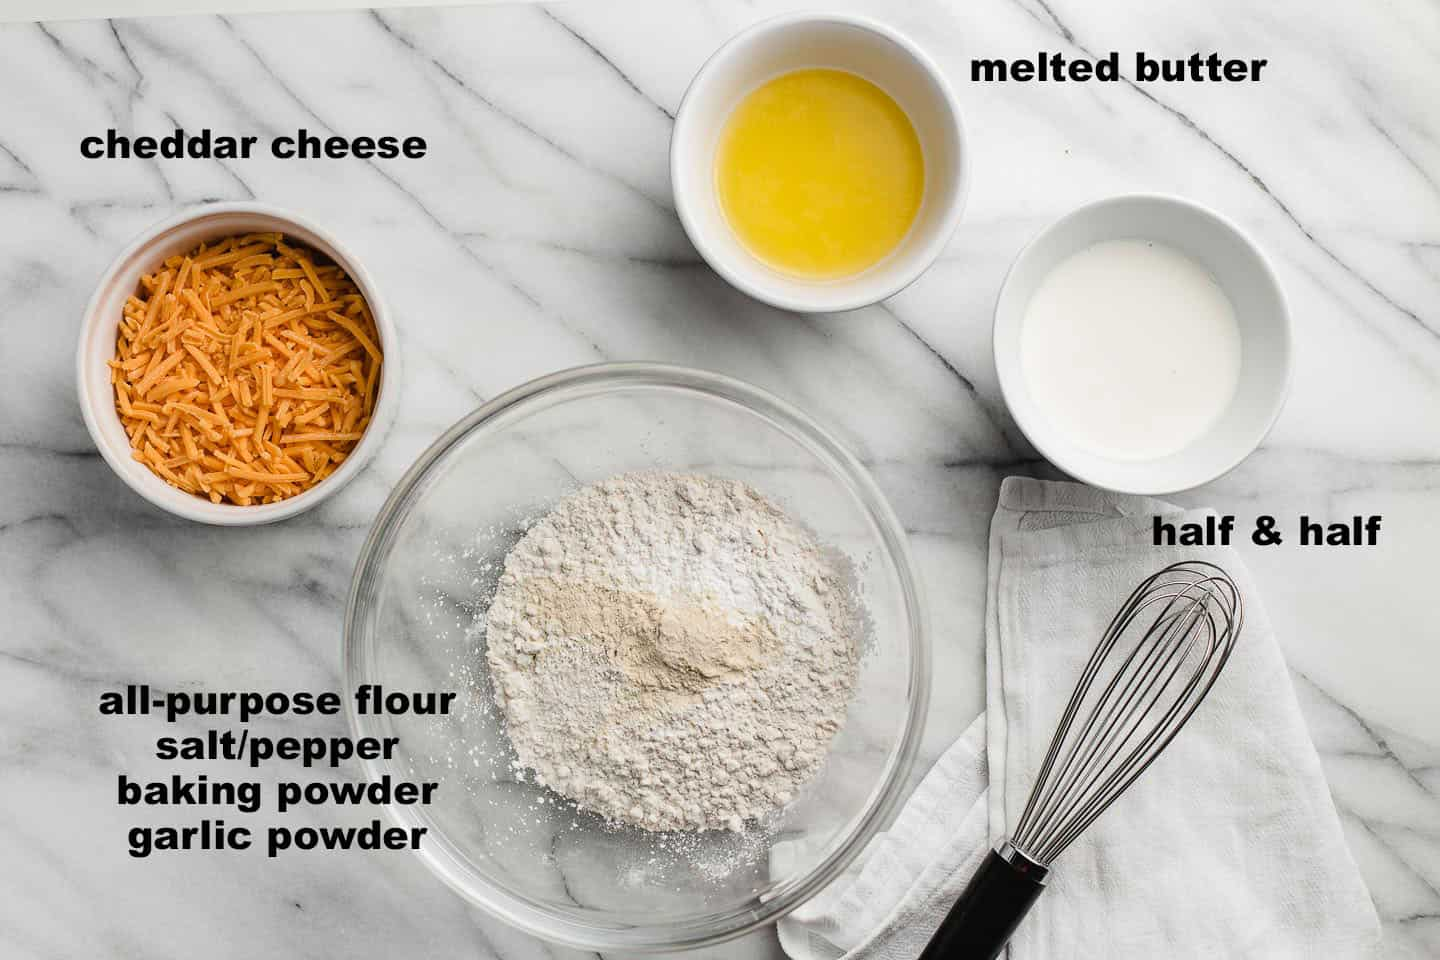 Cheddar bay biscuit ingredients on a table.